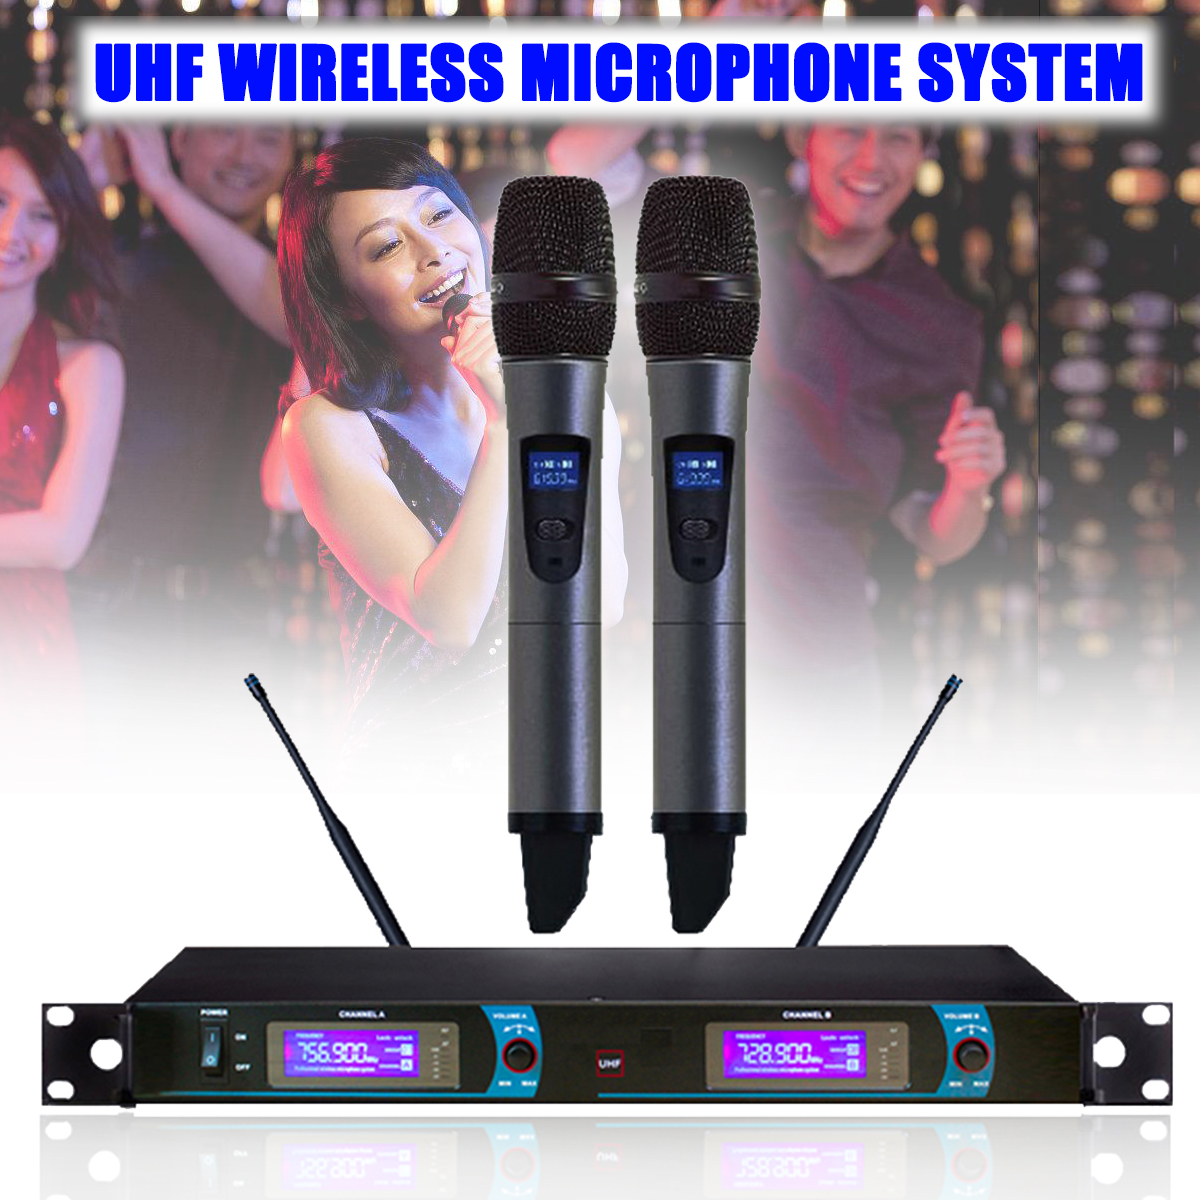 UHF Long Range Dual Channel 2 Handheld Mic Transmitter Professional Karaoke UHF Wireless Microphone System